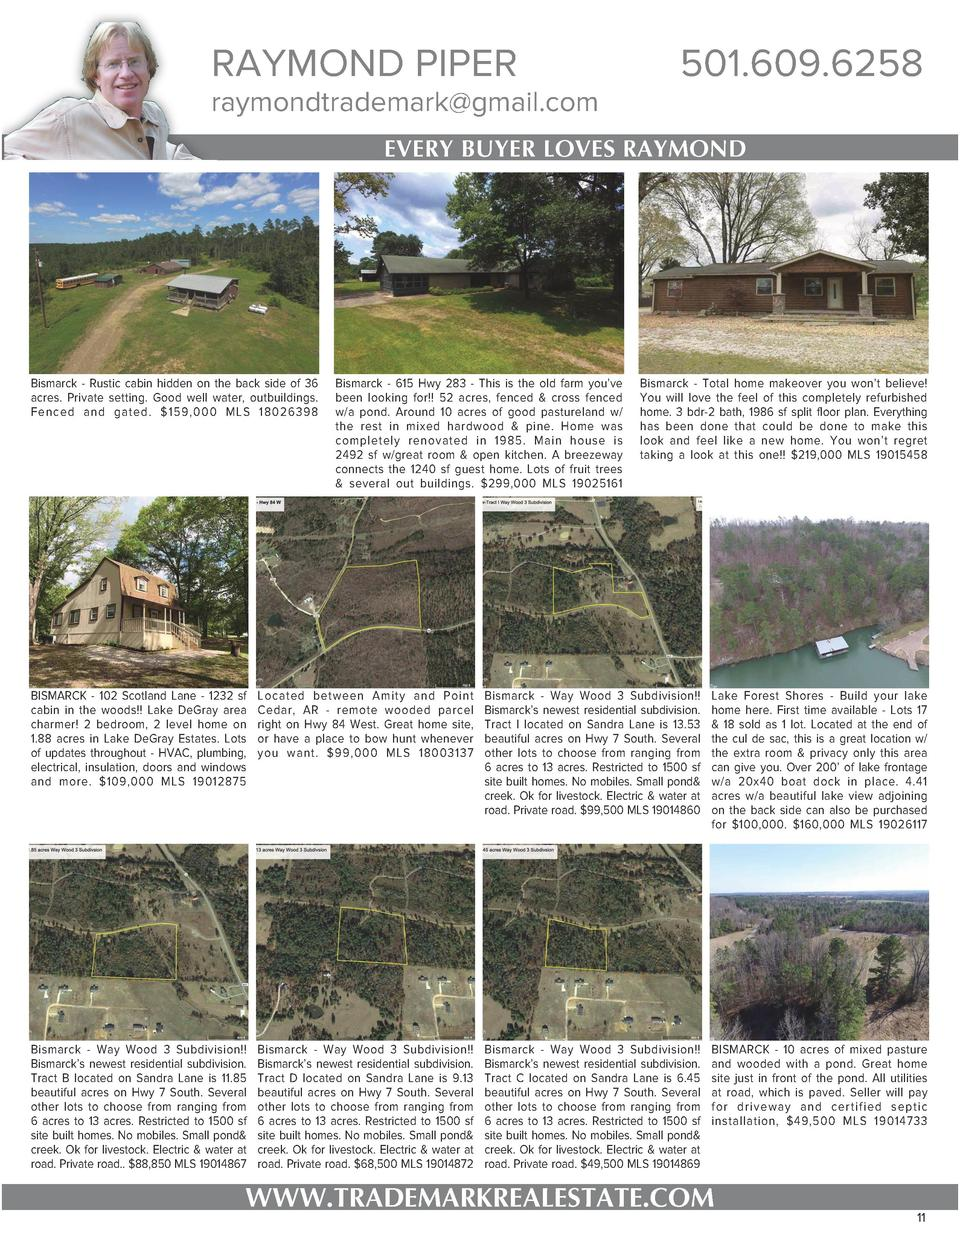 RAYMOND PIPER  raymondtrademark gmail.com  501.609.6258  EVERY BUYER LOVES RAYMOND  Bismarck - Rustic cabin hidden on the ...